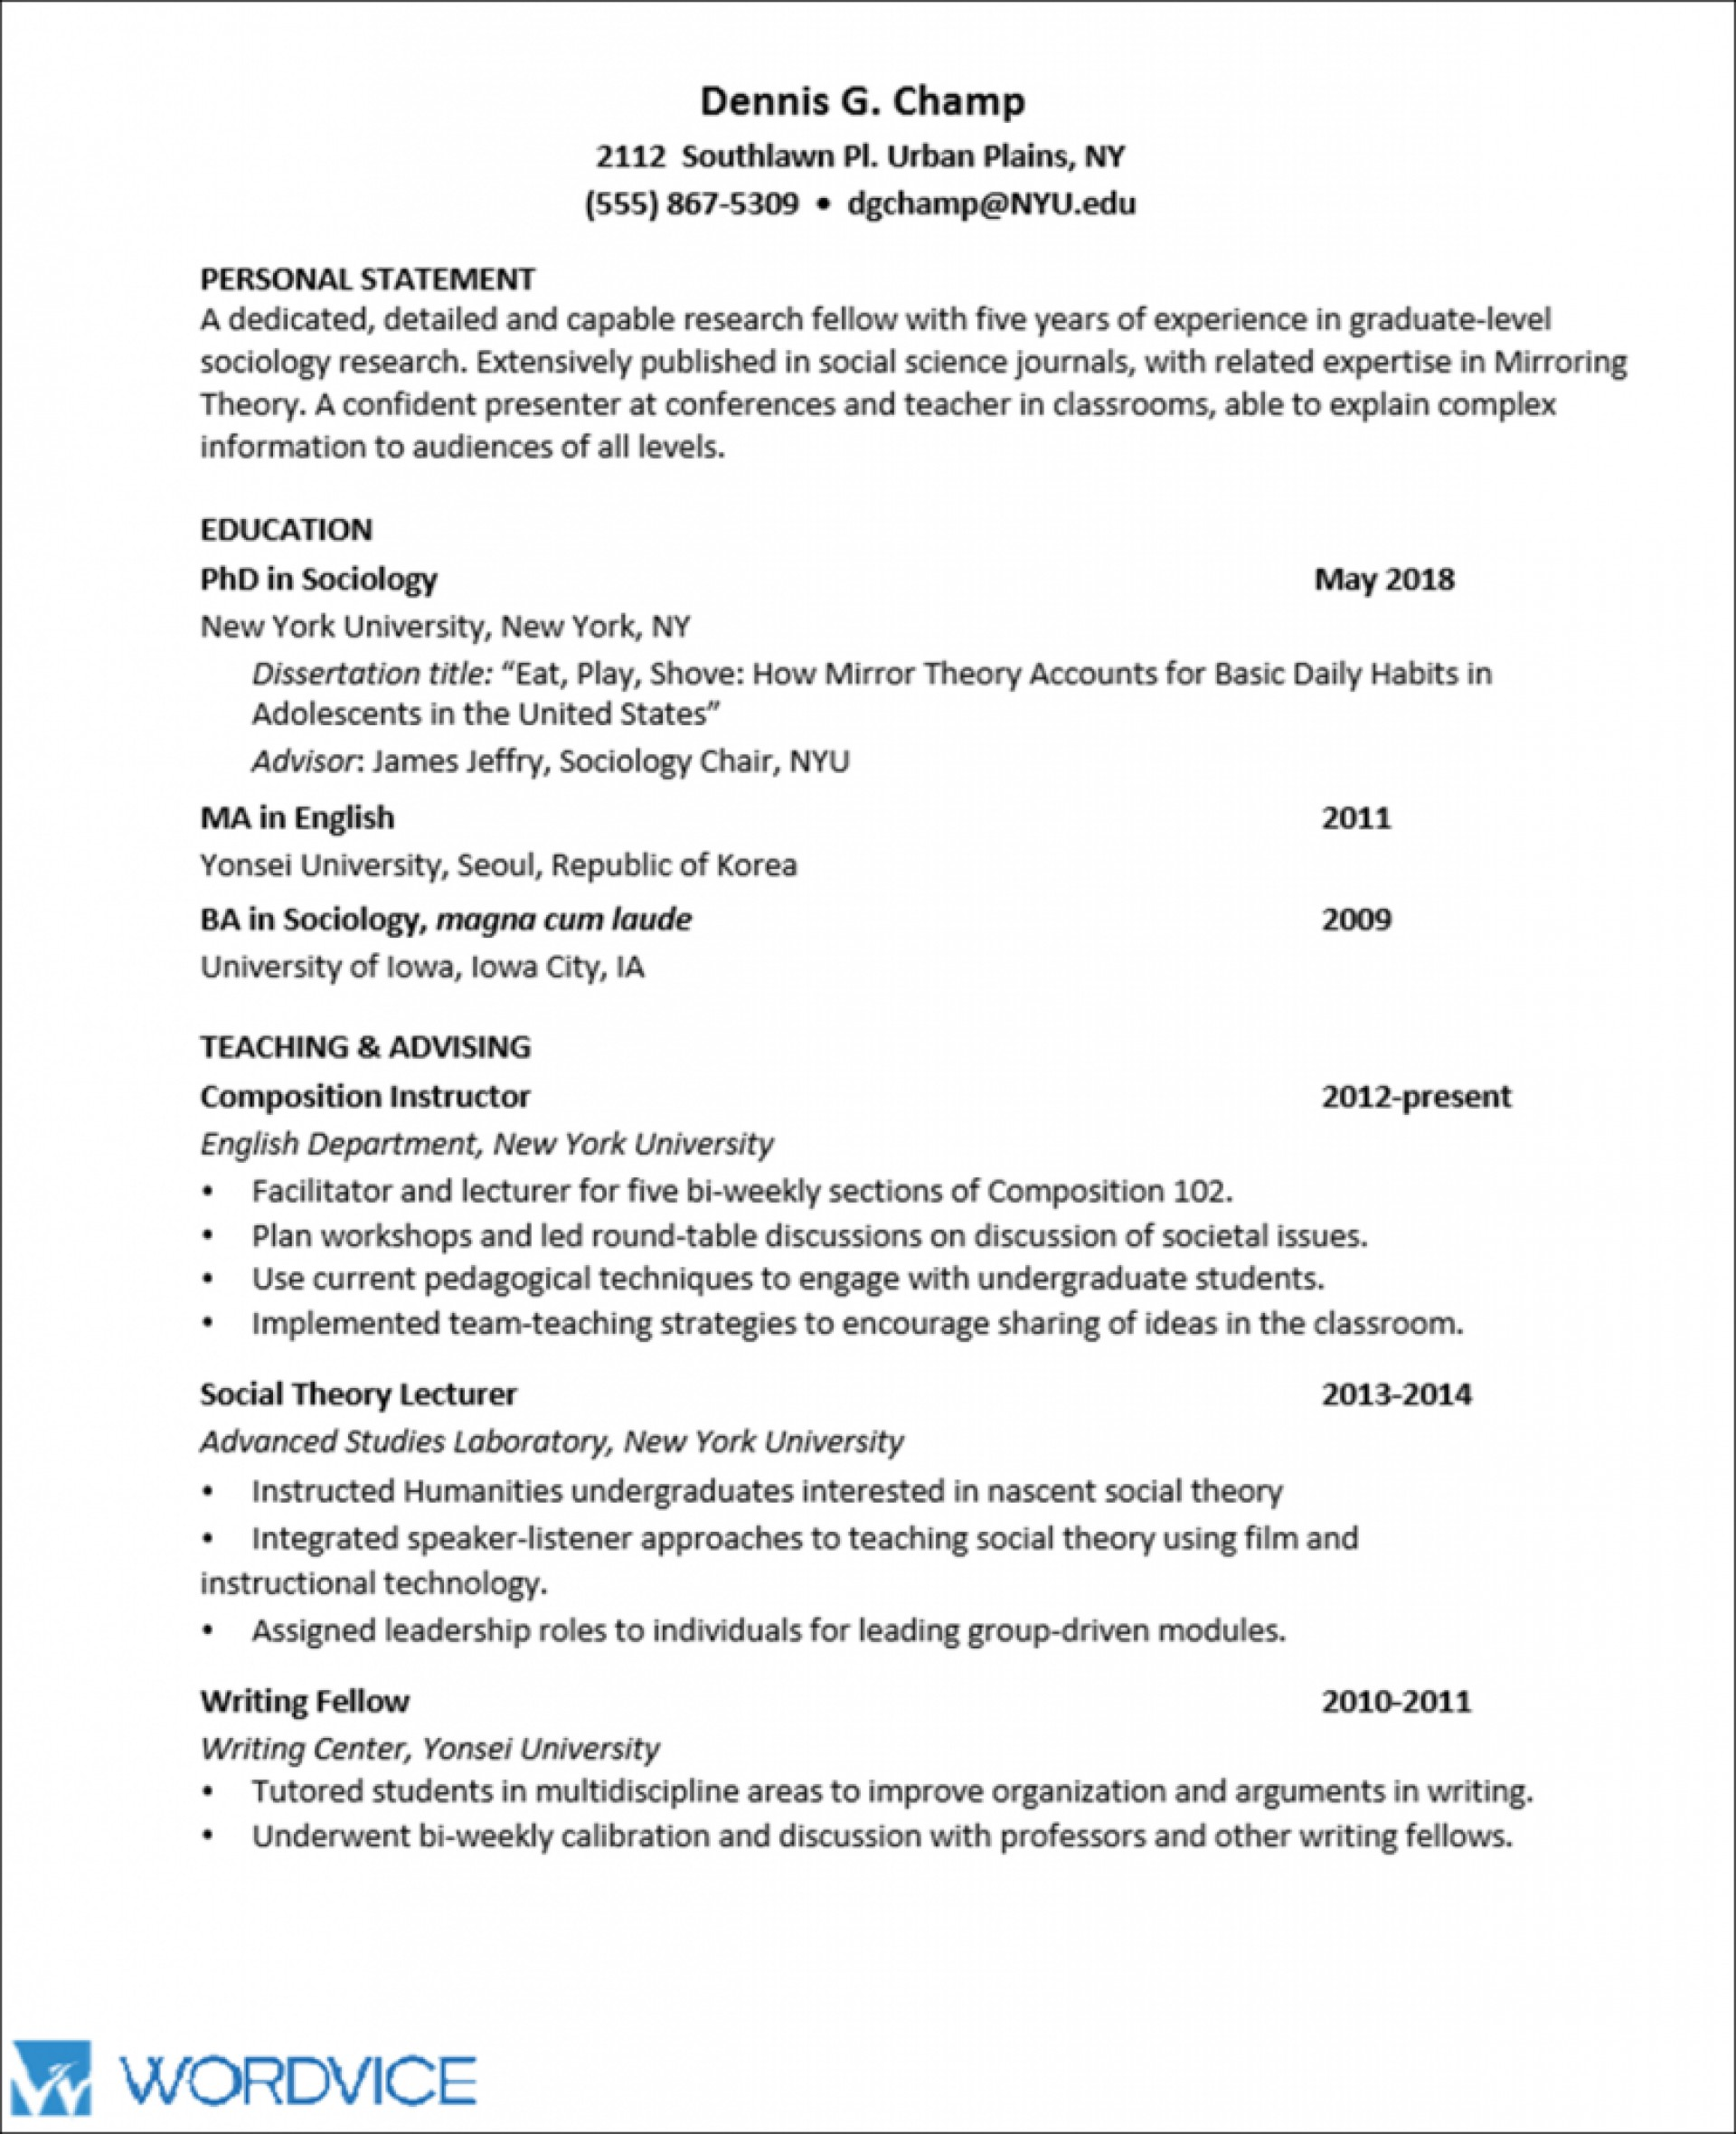 021 Career Research Paper Introduction Sample Academic Cv Graphic2 Impressive 1920